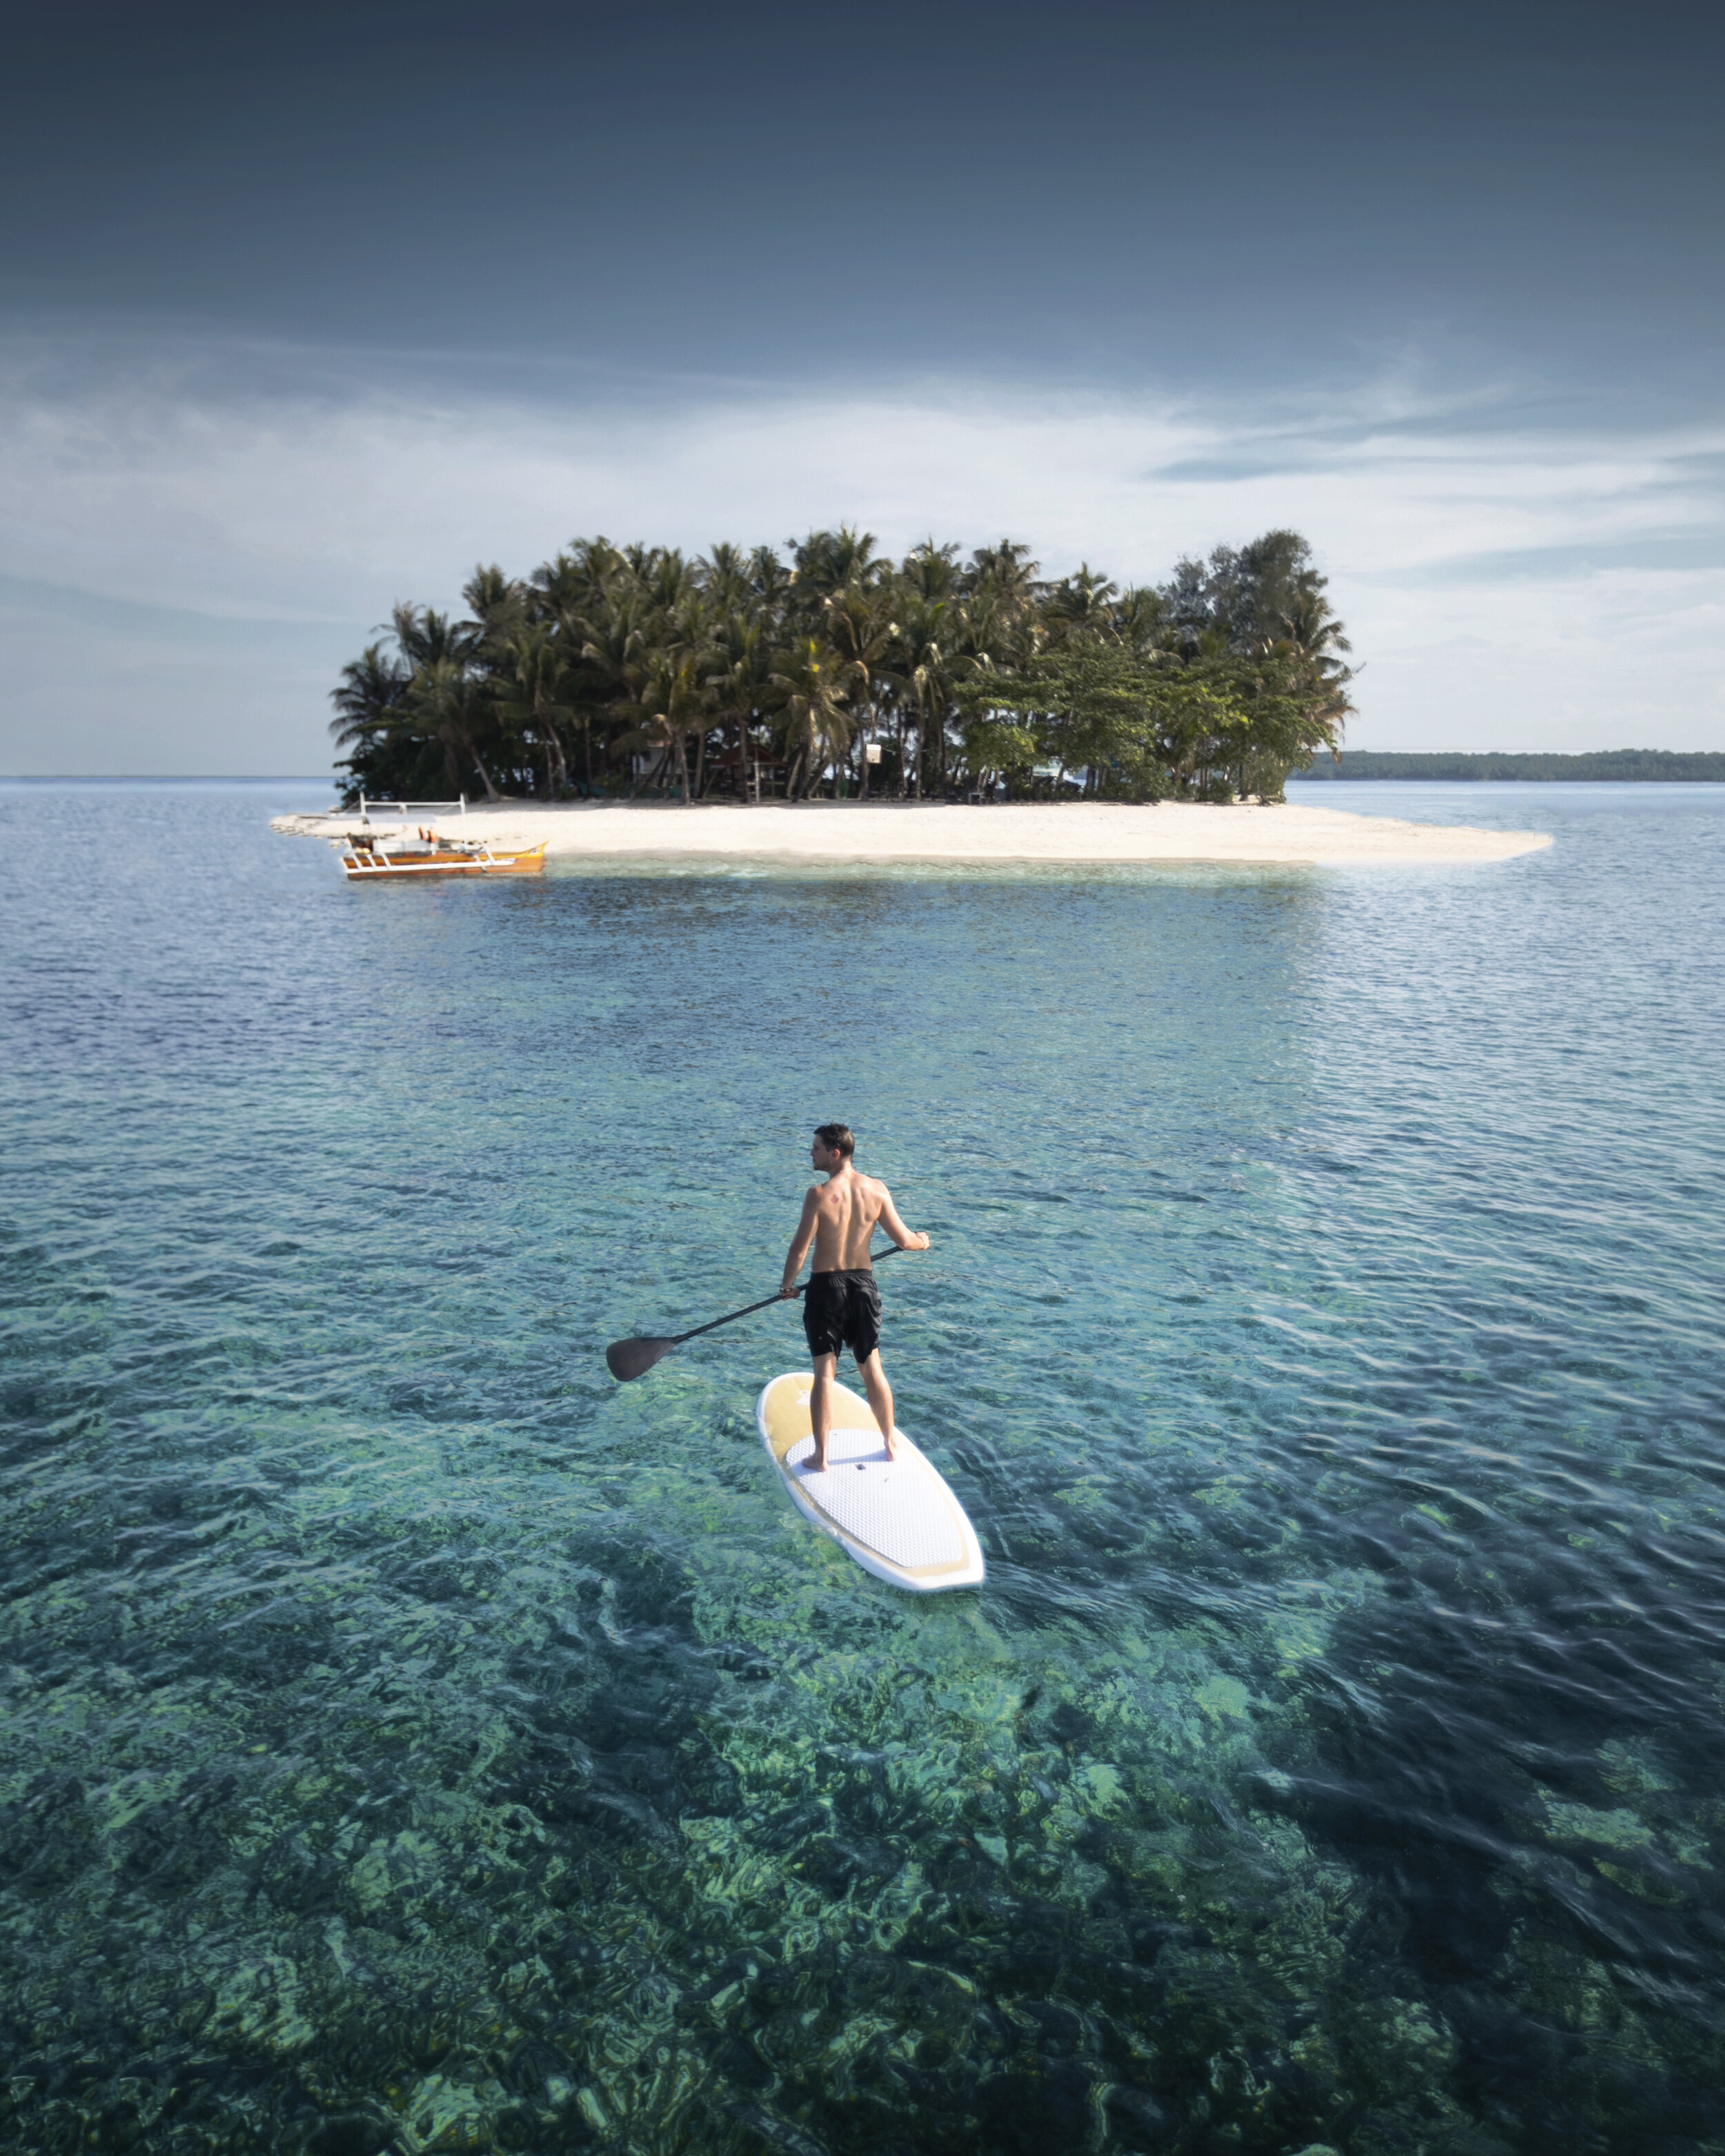 Lost LeBlanc on a paddle board in Siargo, Philippines.